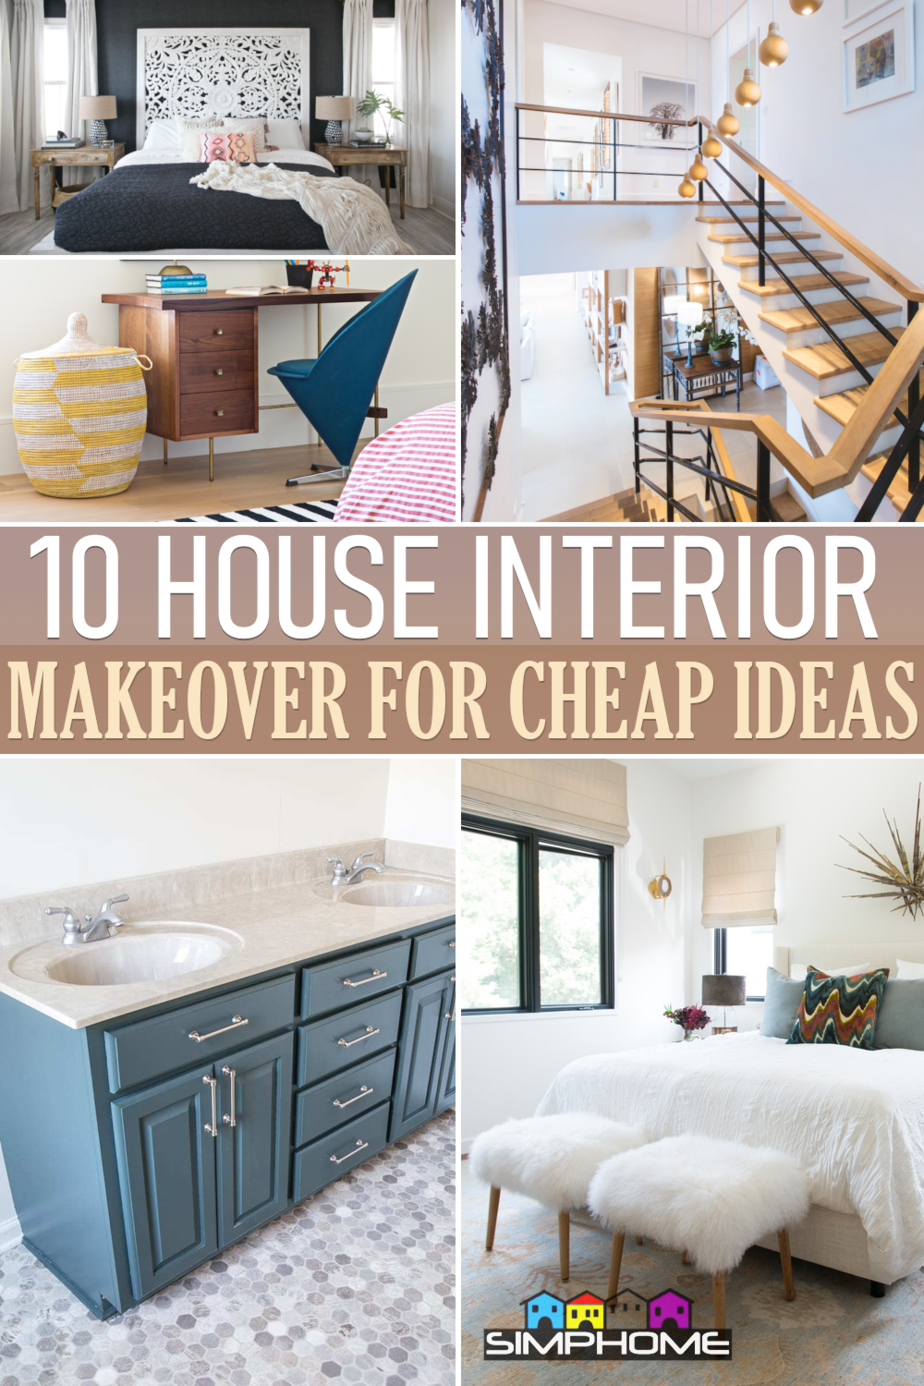 10 How to Update Your House Interior on a Budget via Simphome.comFeatured